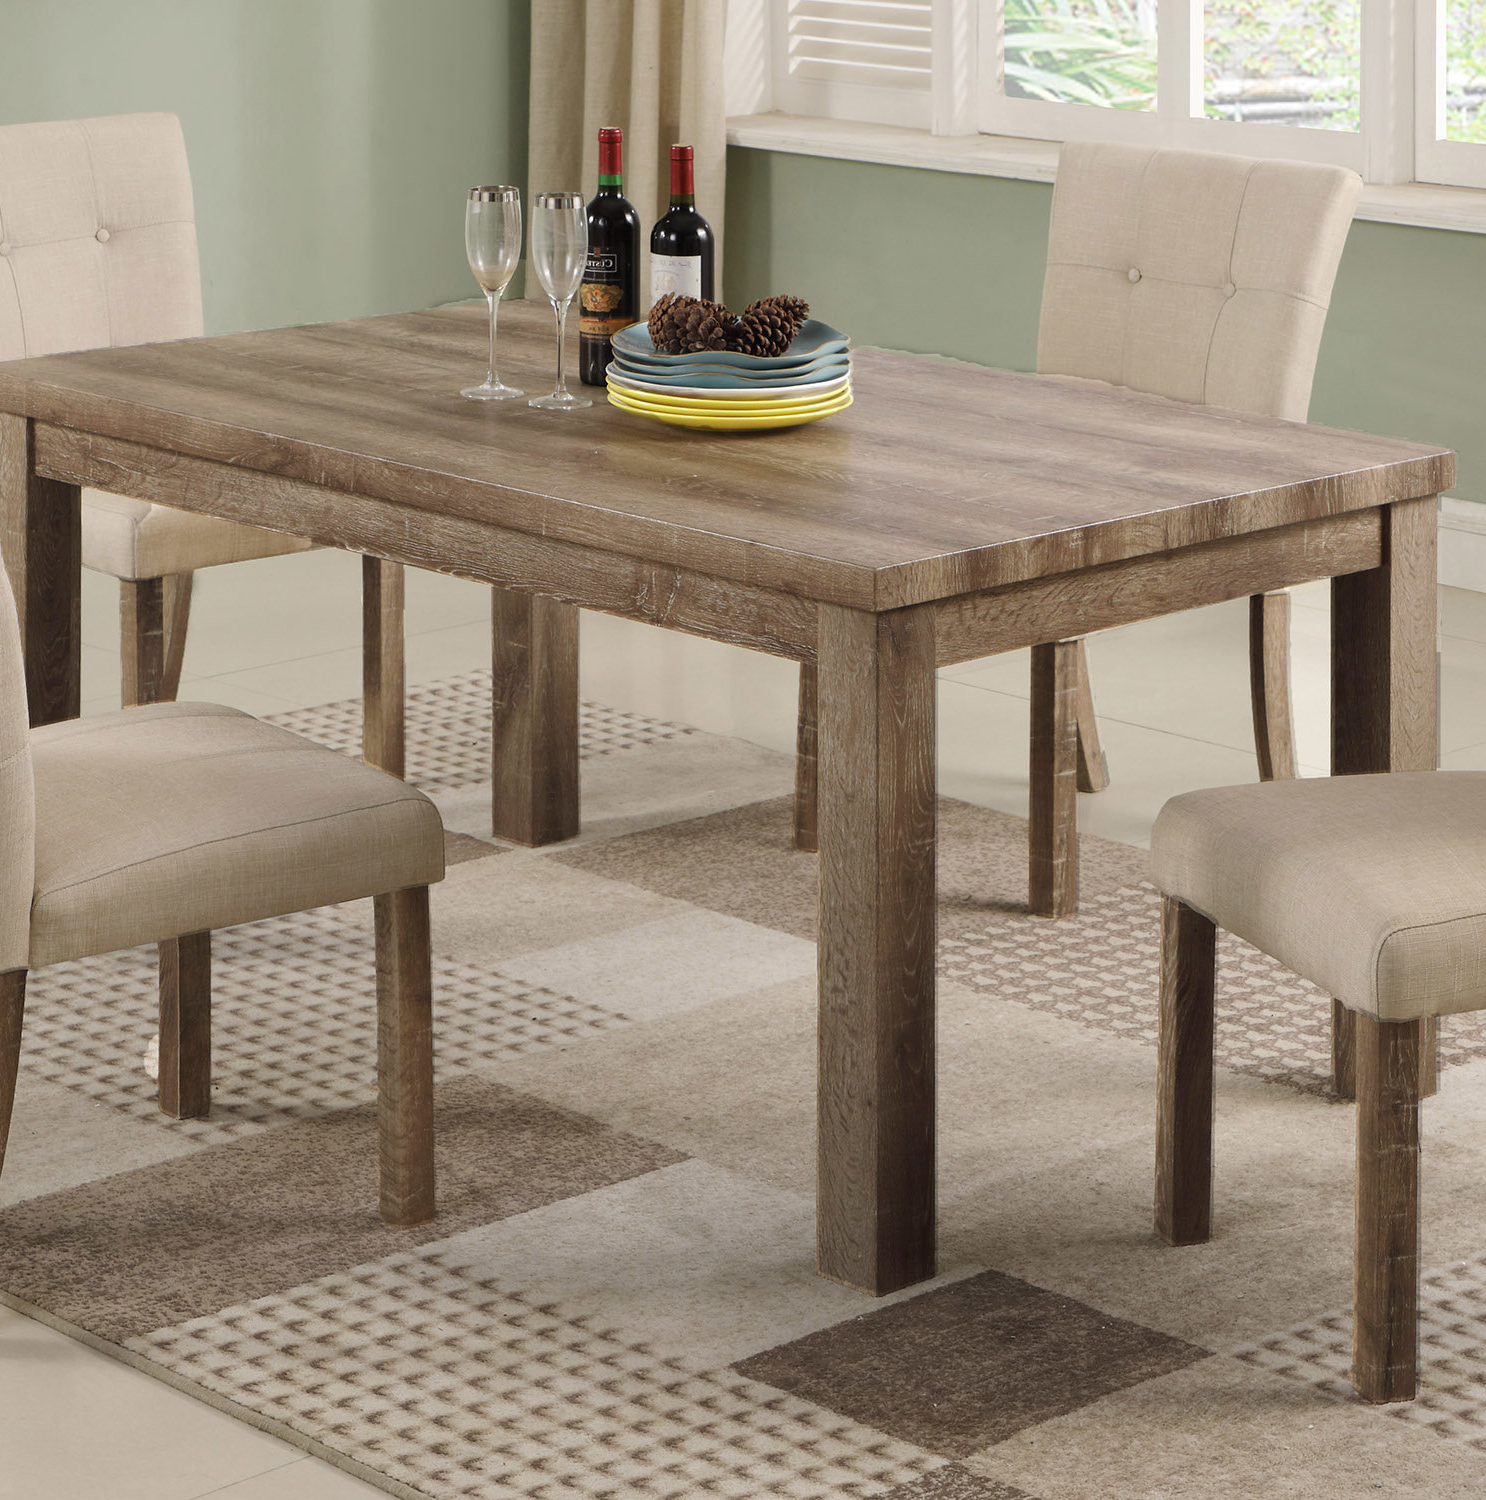 Ephraim 5 Piece Dining Sets Within Popular Millwood Pines Ephraim Dining Table (View 8 of 25)